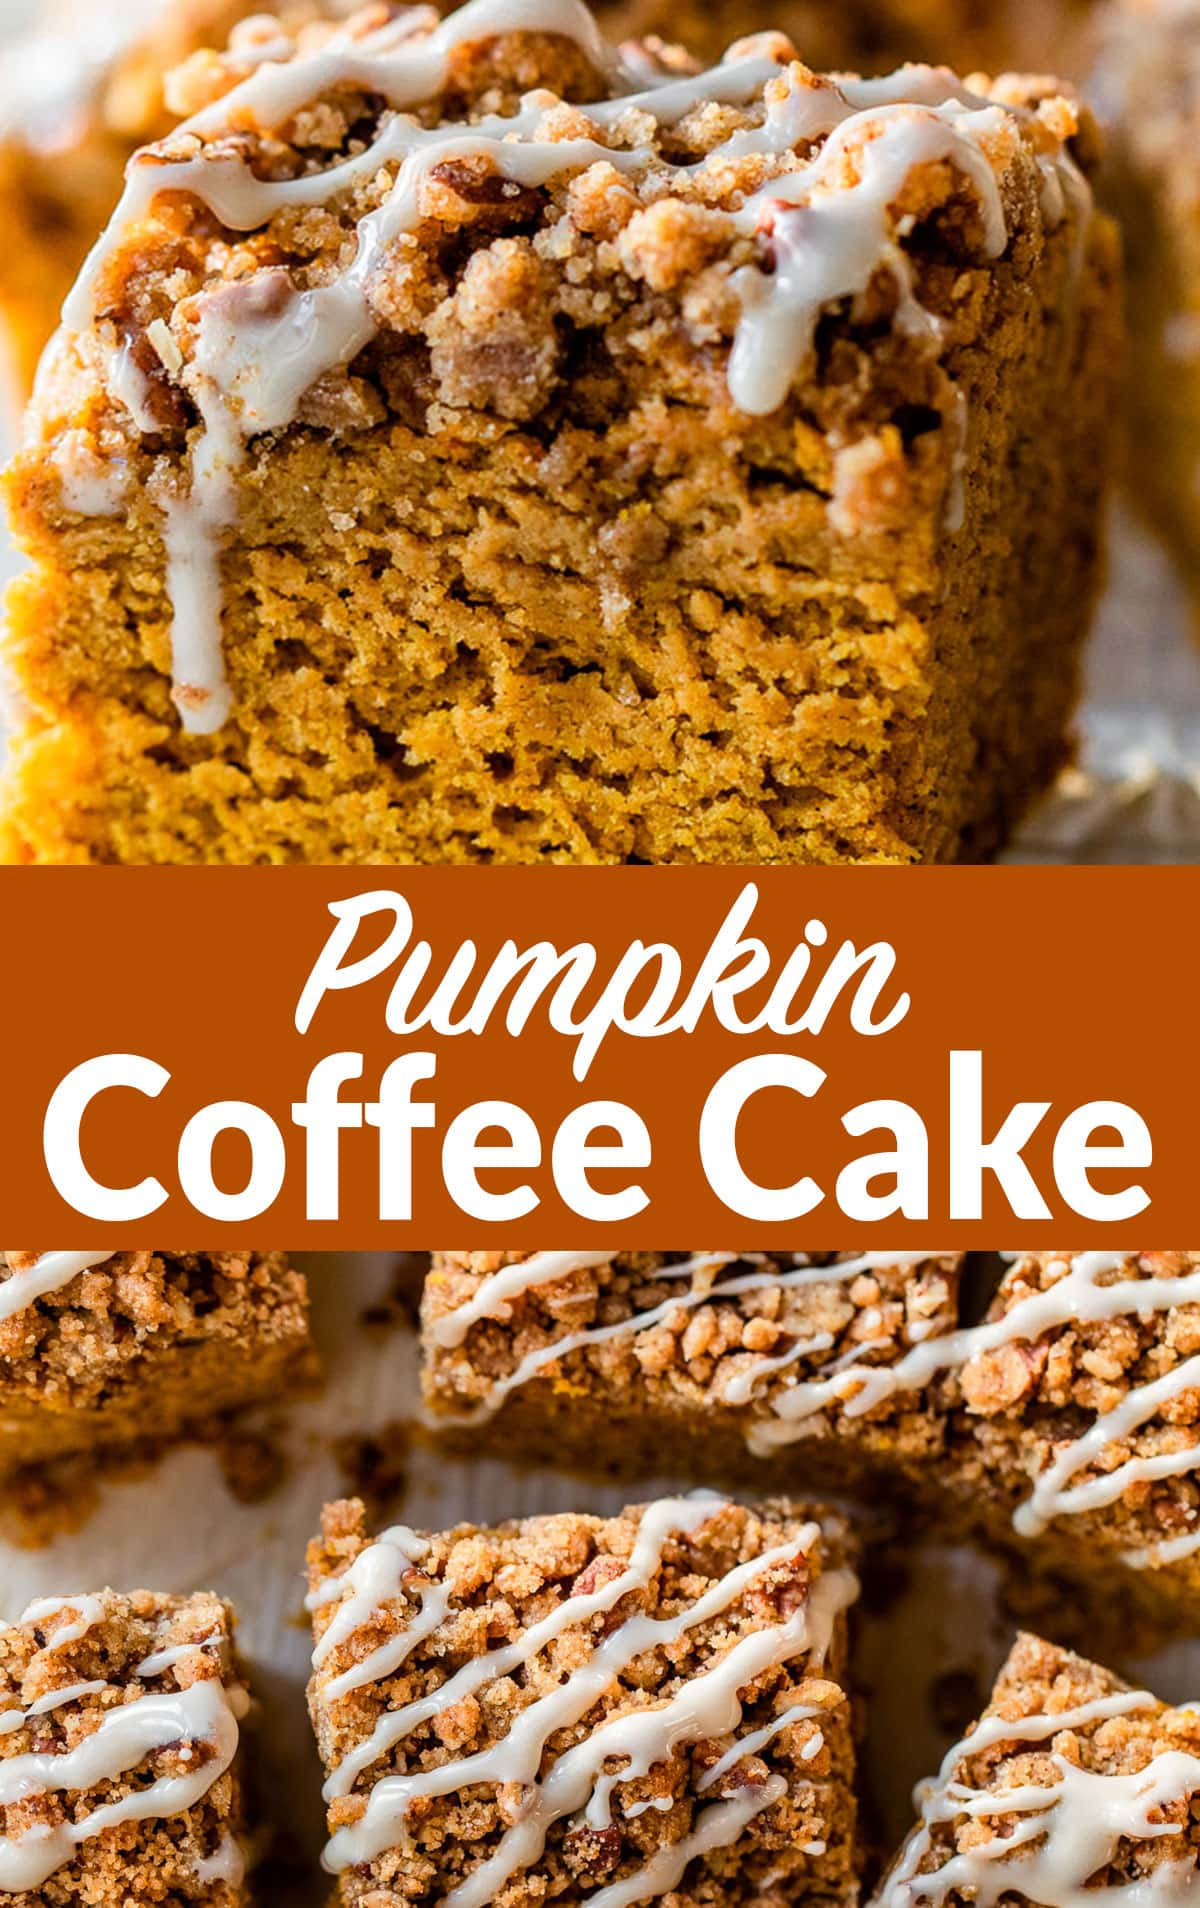 Healthy Pumpkin Coffee Cake with Streusel Topping and Maple Glaze. Easy, moist, and PACKED with warm fall spices and maple flavor. This is the best from-scratch pumpkin cake recipe! No mix needed! #wellplated #pumpkin #coffeecake